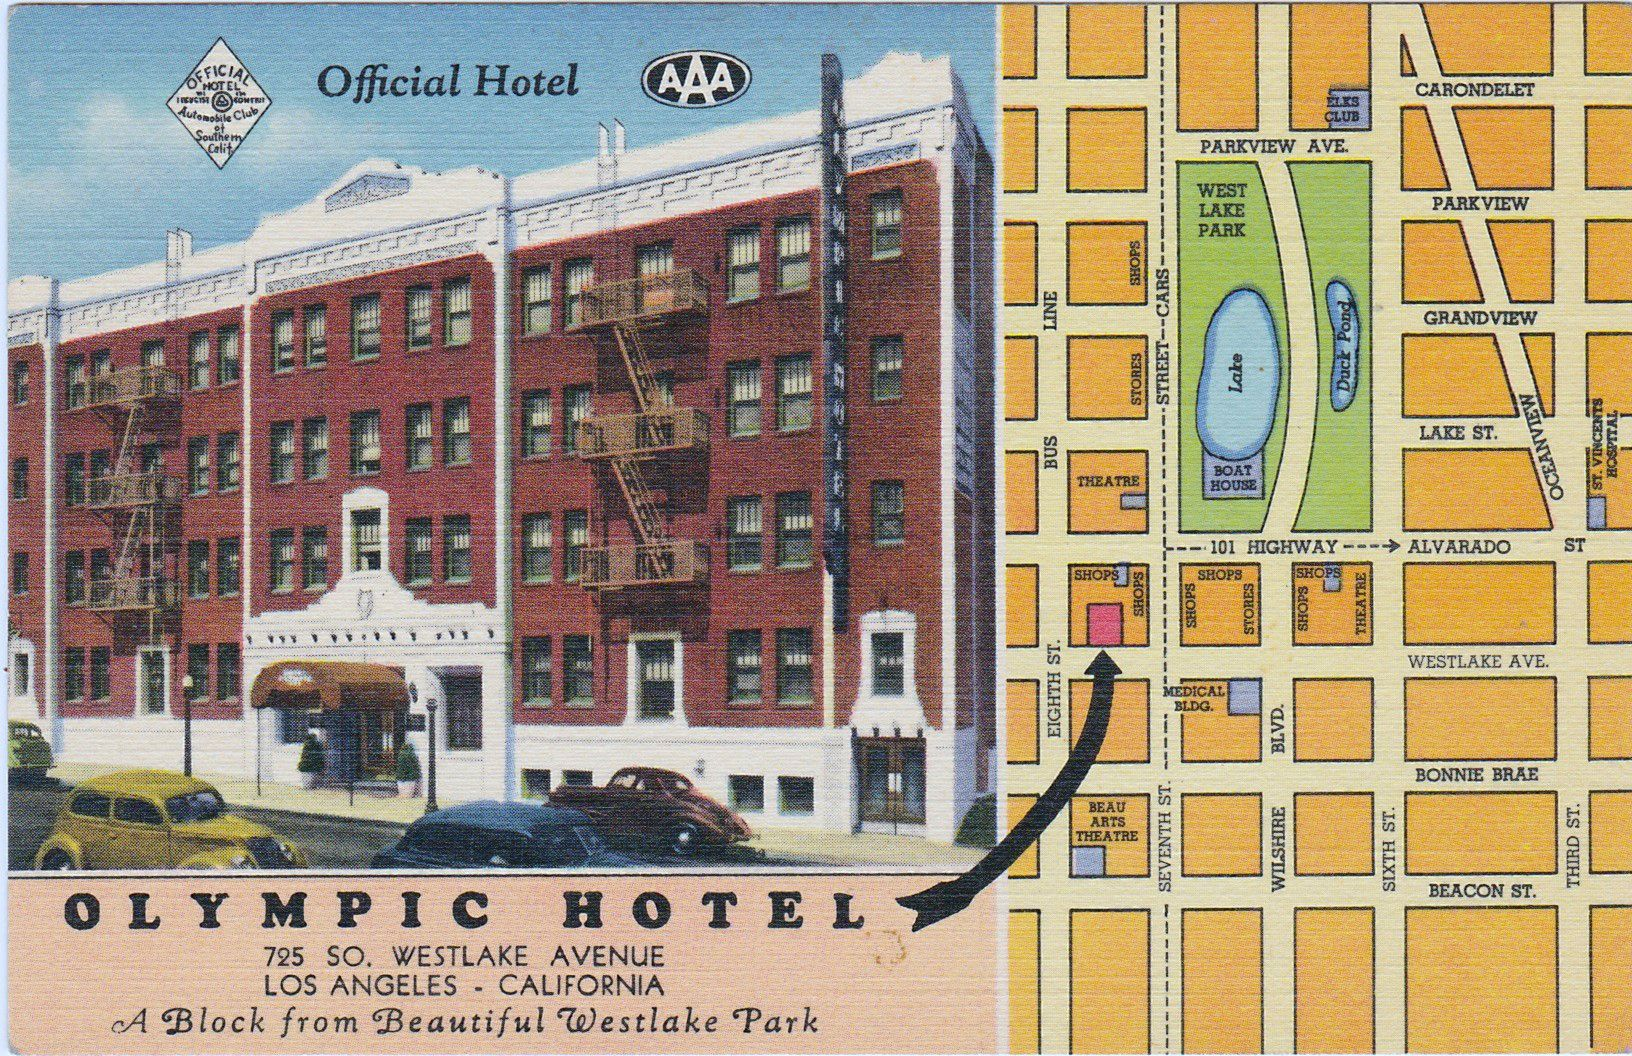 Olympic Hotel 725 S Westlake Ave Los Angeles CA 1940 200